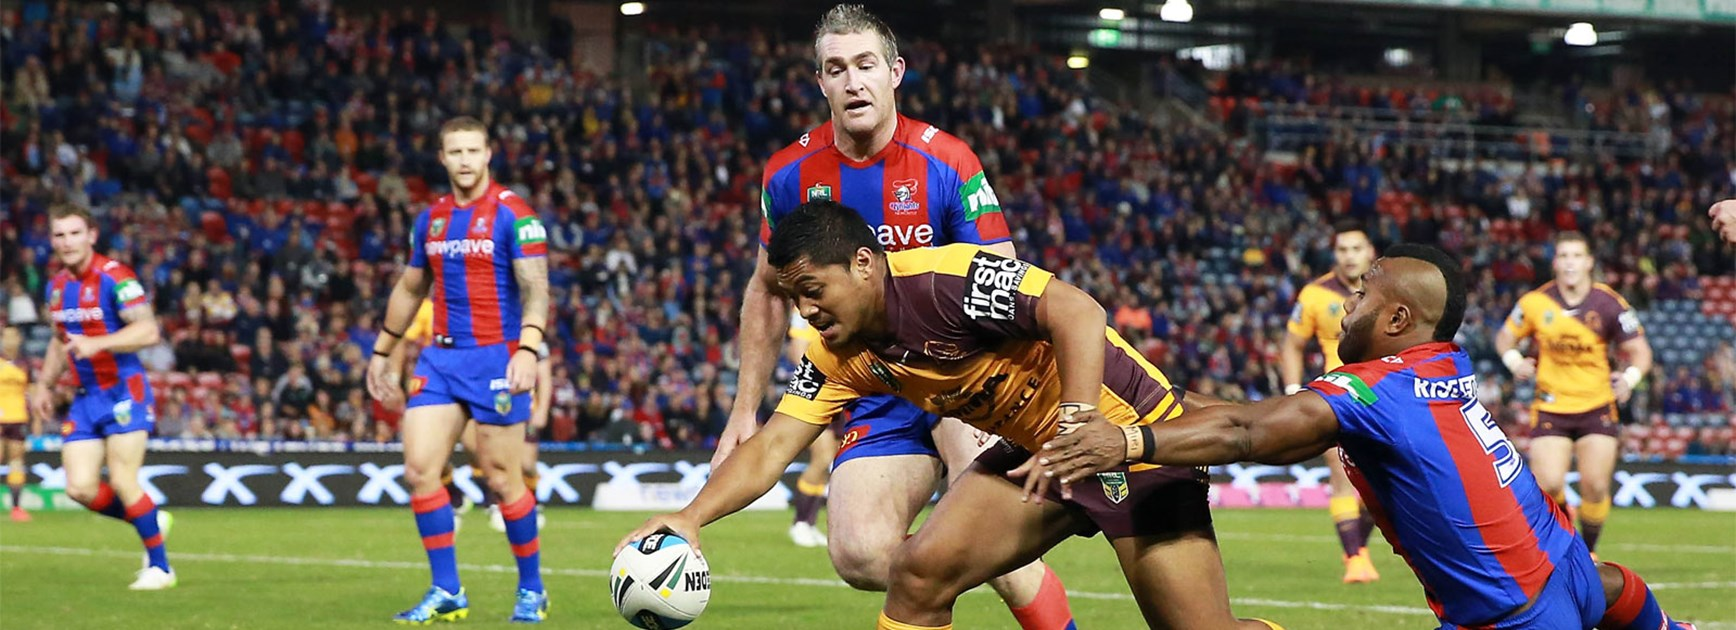 Anthony Milford scores the opening try for Brisbane against Newcastle on Monday night.